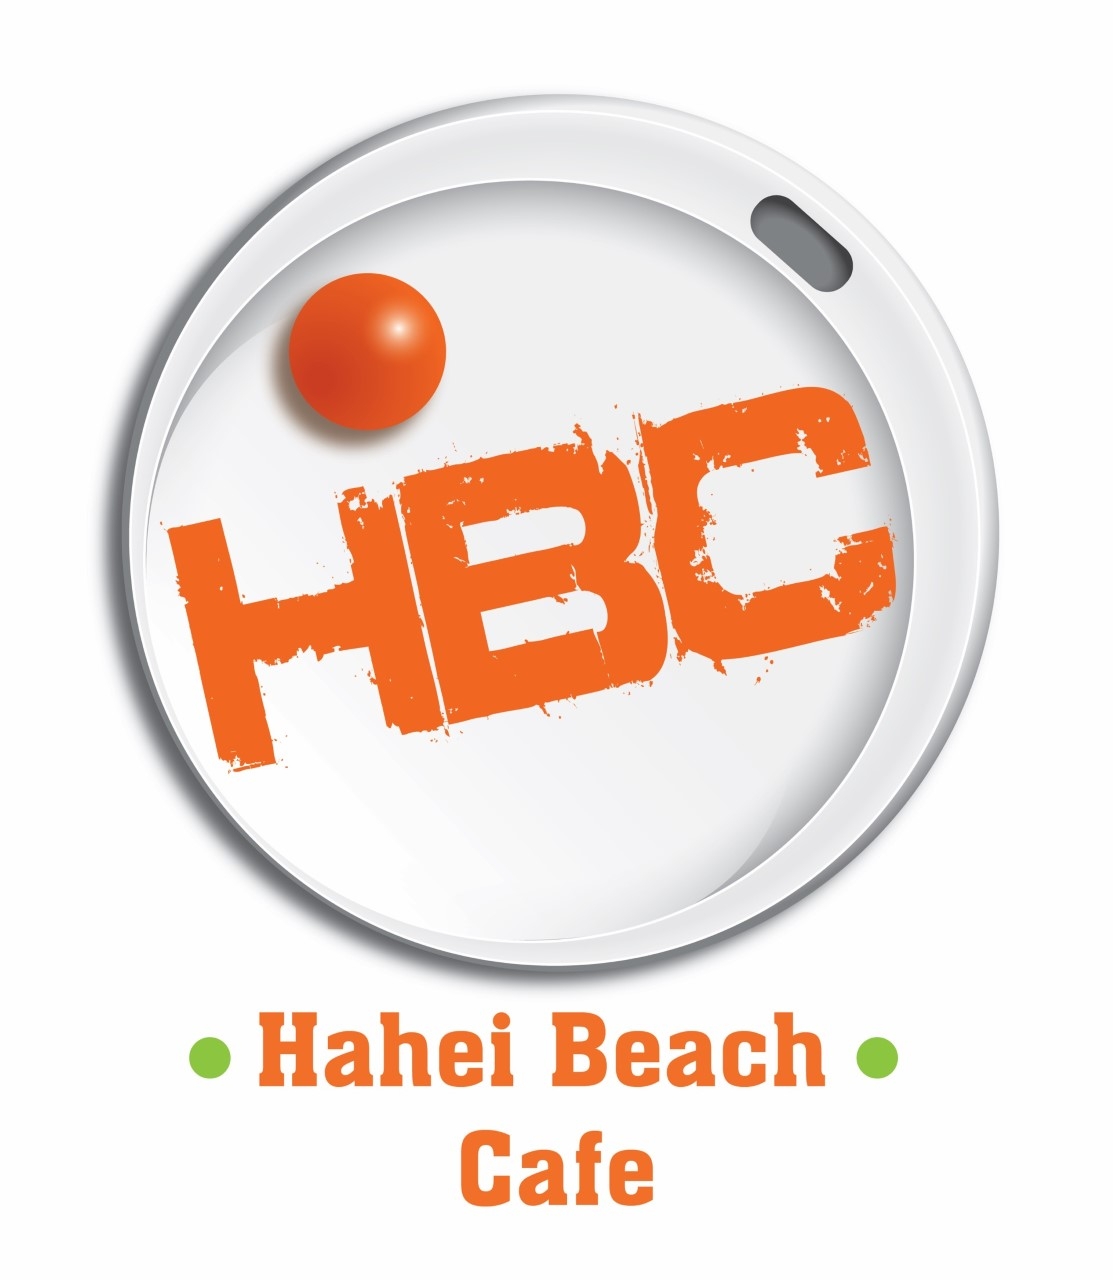 Hahei Beach Cafe